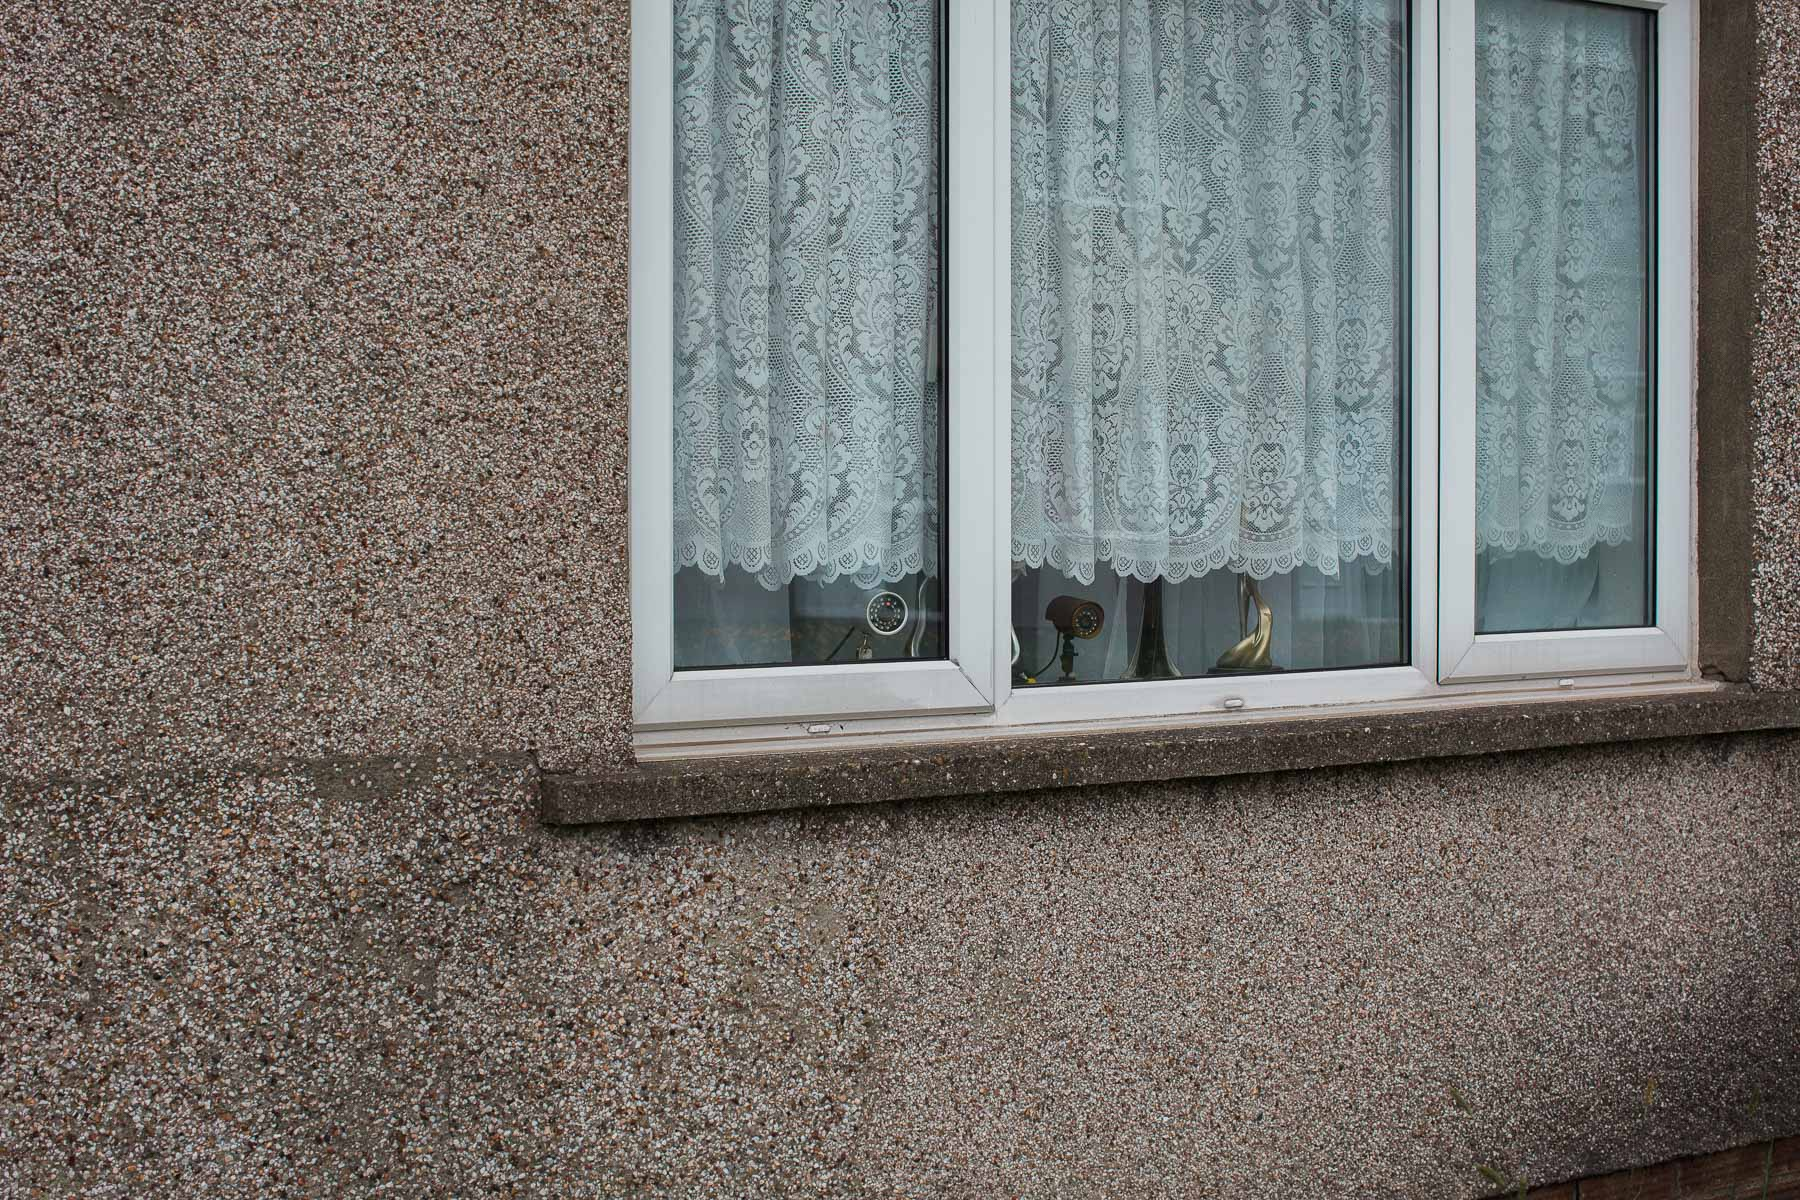 Personal Security on the Gurnos estate.